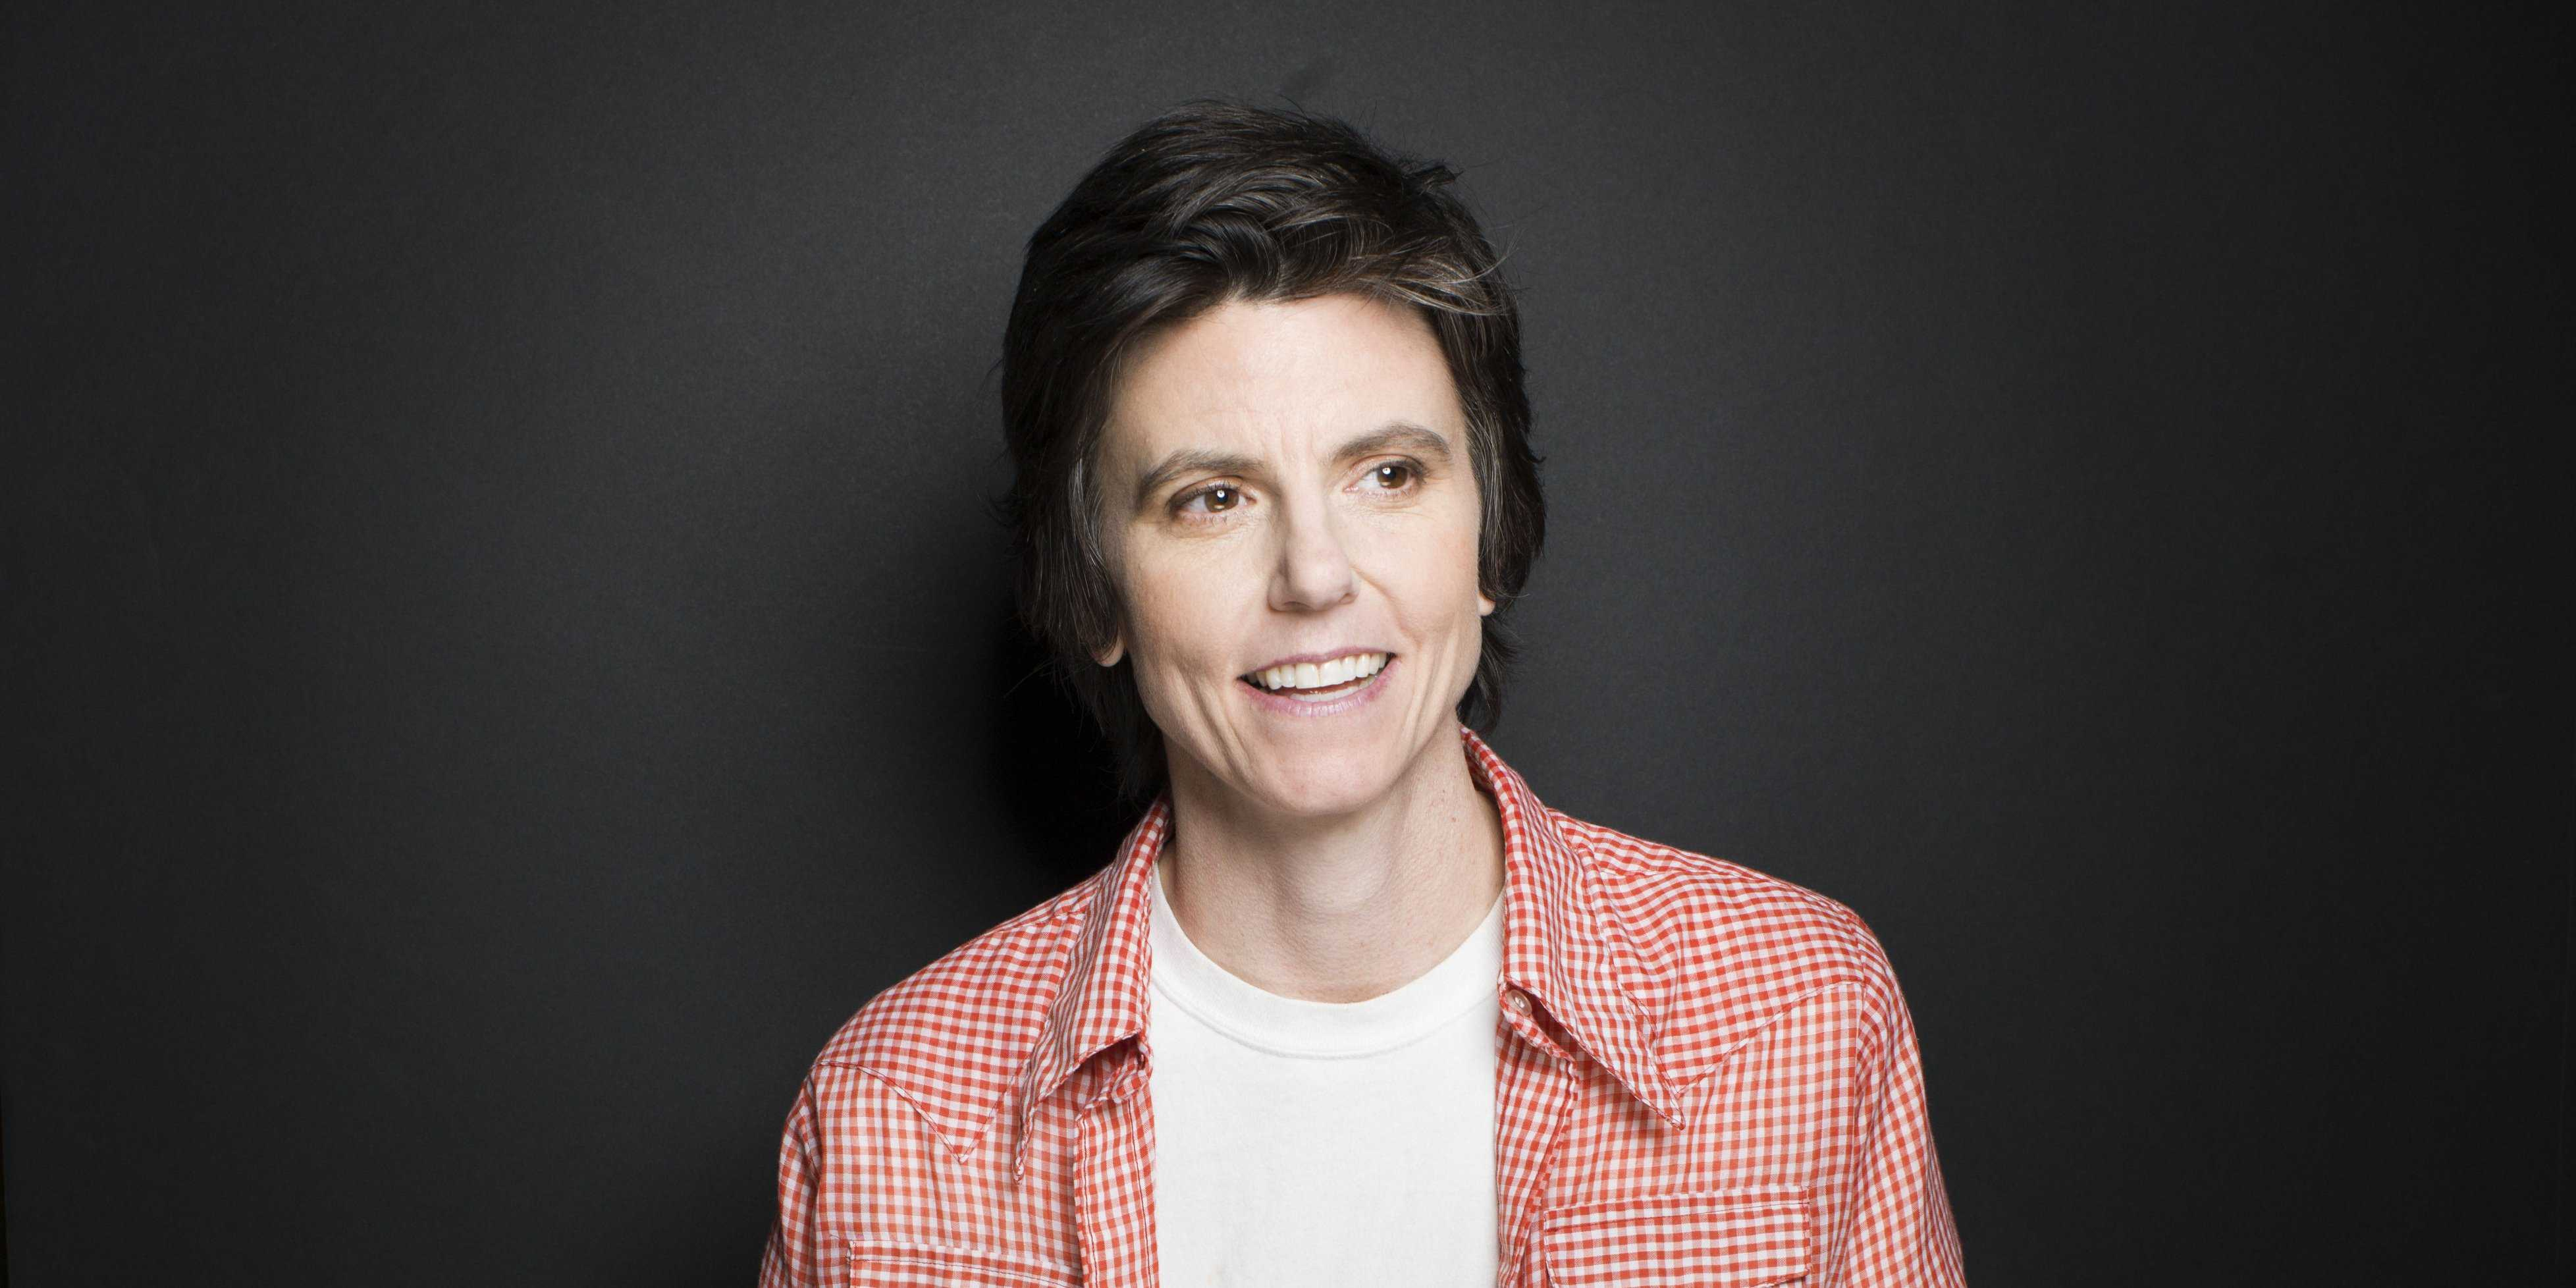 comedian-tig-notaro-shared-her-personal-tragedy-with-the-world-and-made-us-laugh